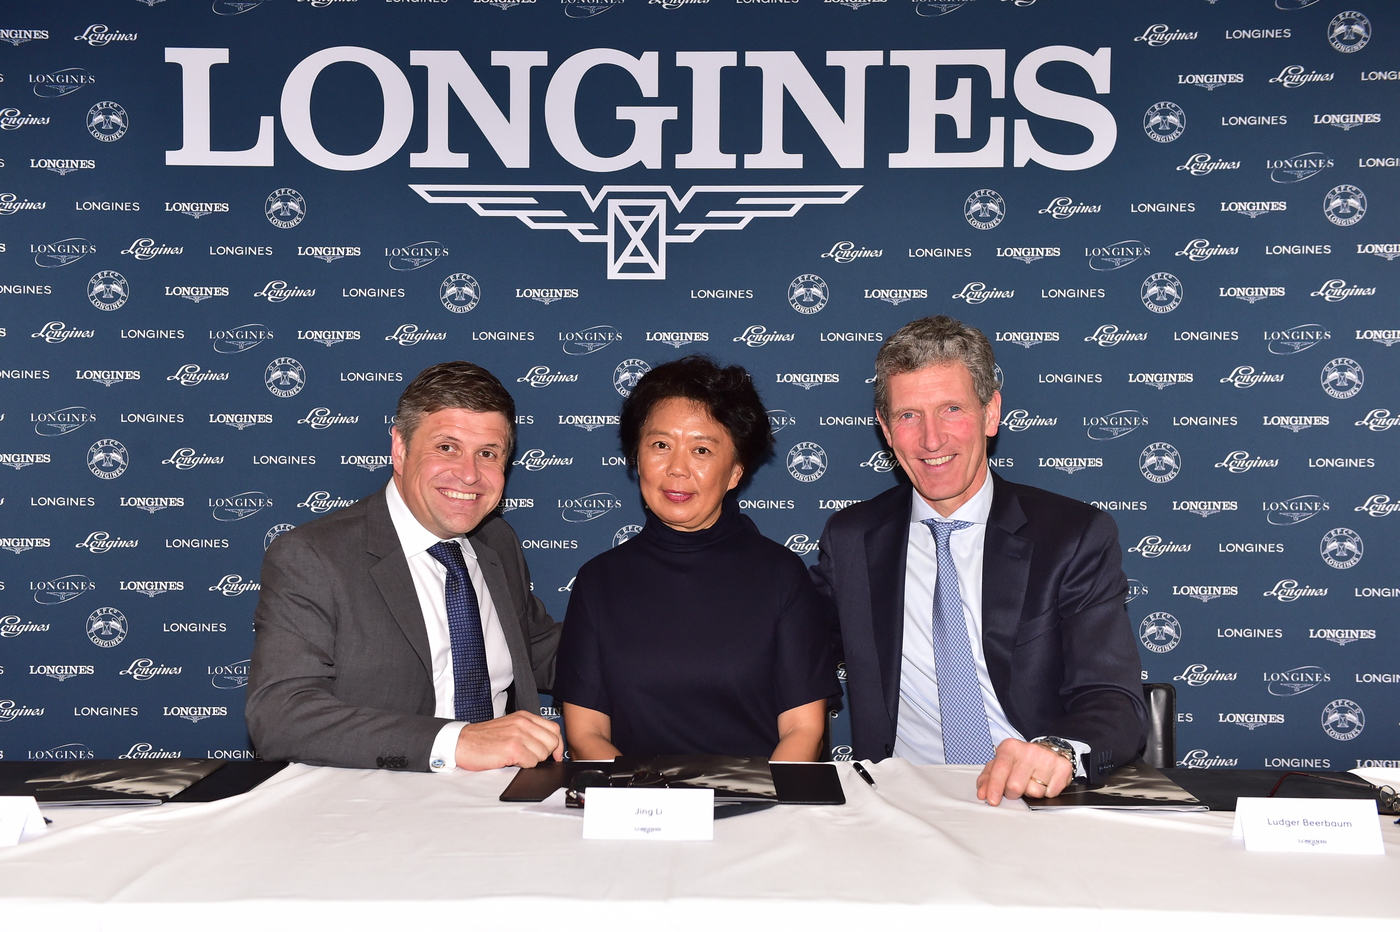 Longines Show Jumping Event: Longines World Equestrian Academy to promote equestrian sports in China 1